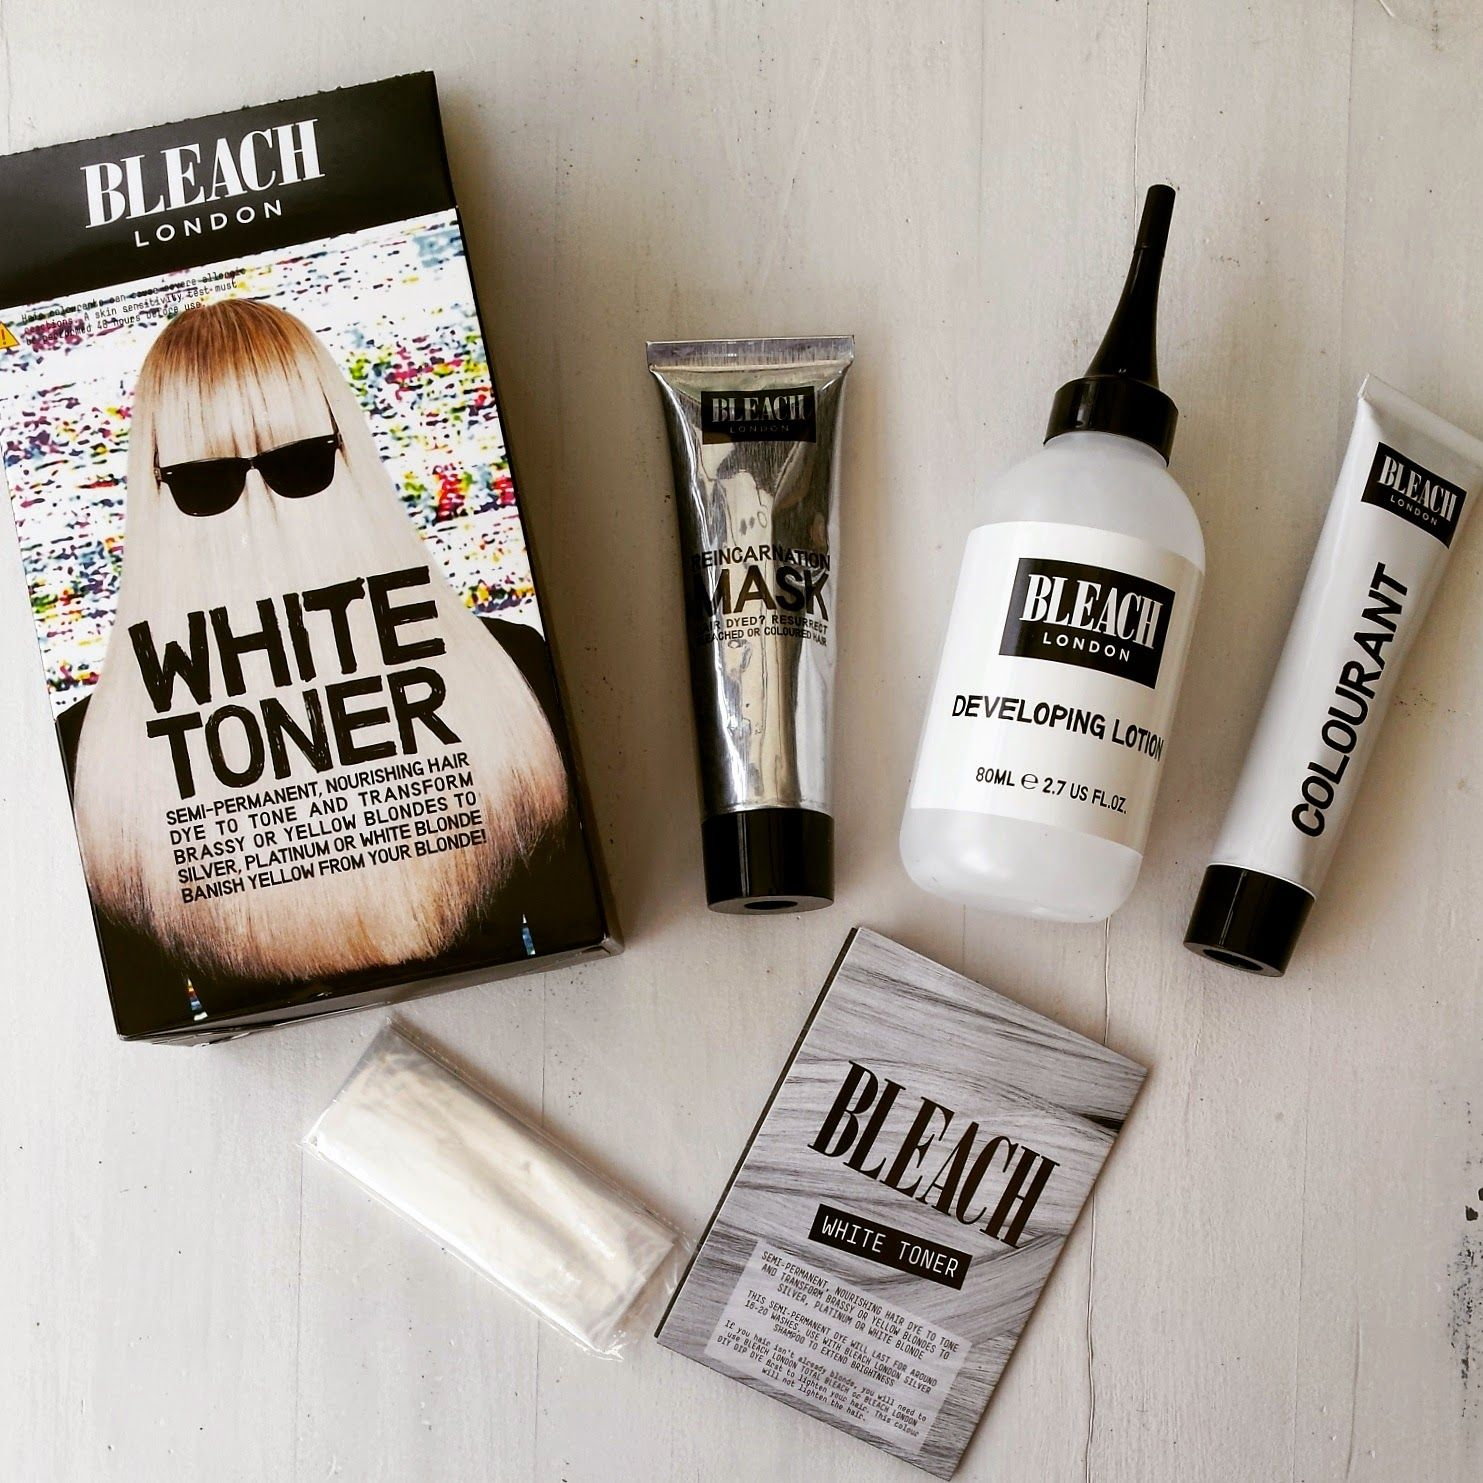 Fashion Beauty Lifestyle Food Music Bleach London White Toner Boots Grannyhair Bleach London White Toner Hair Dye Brands